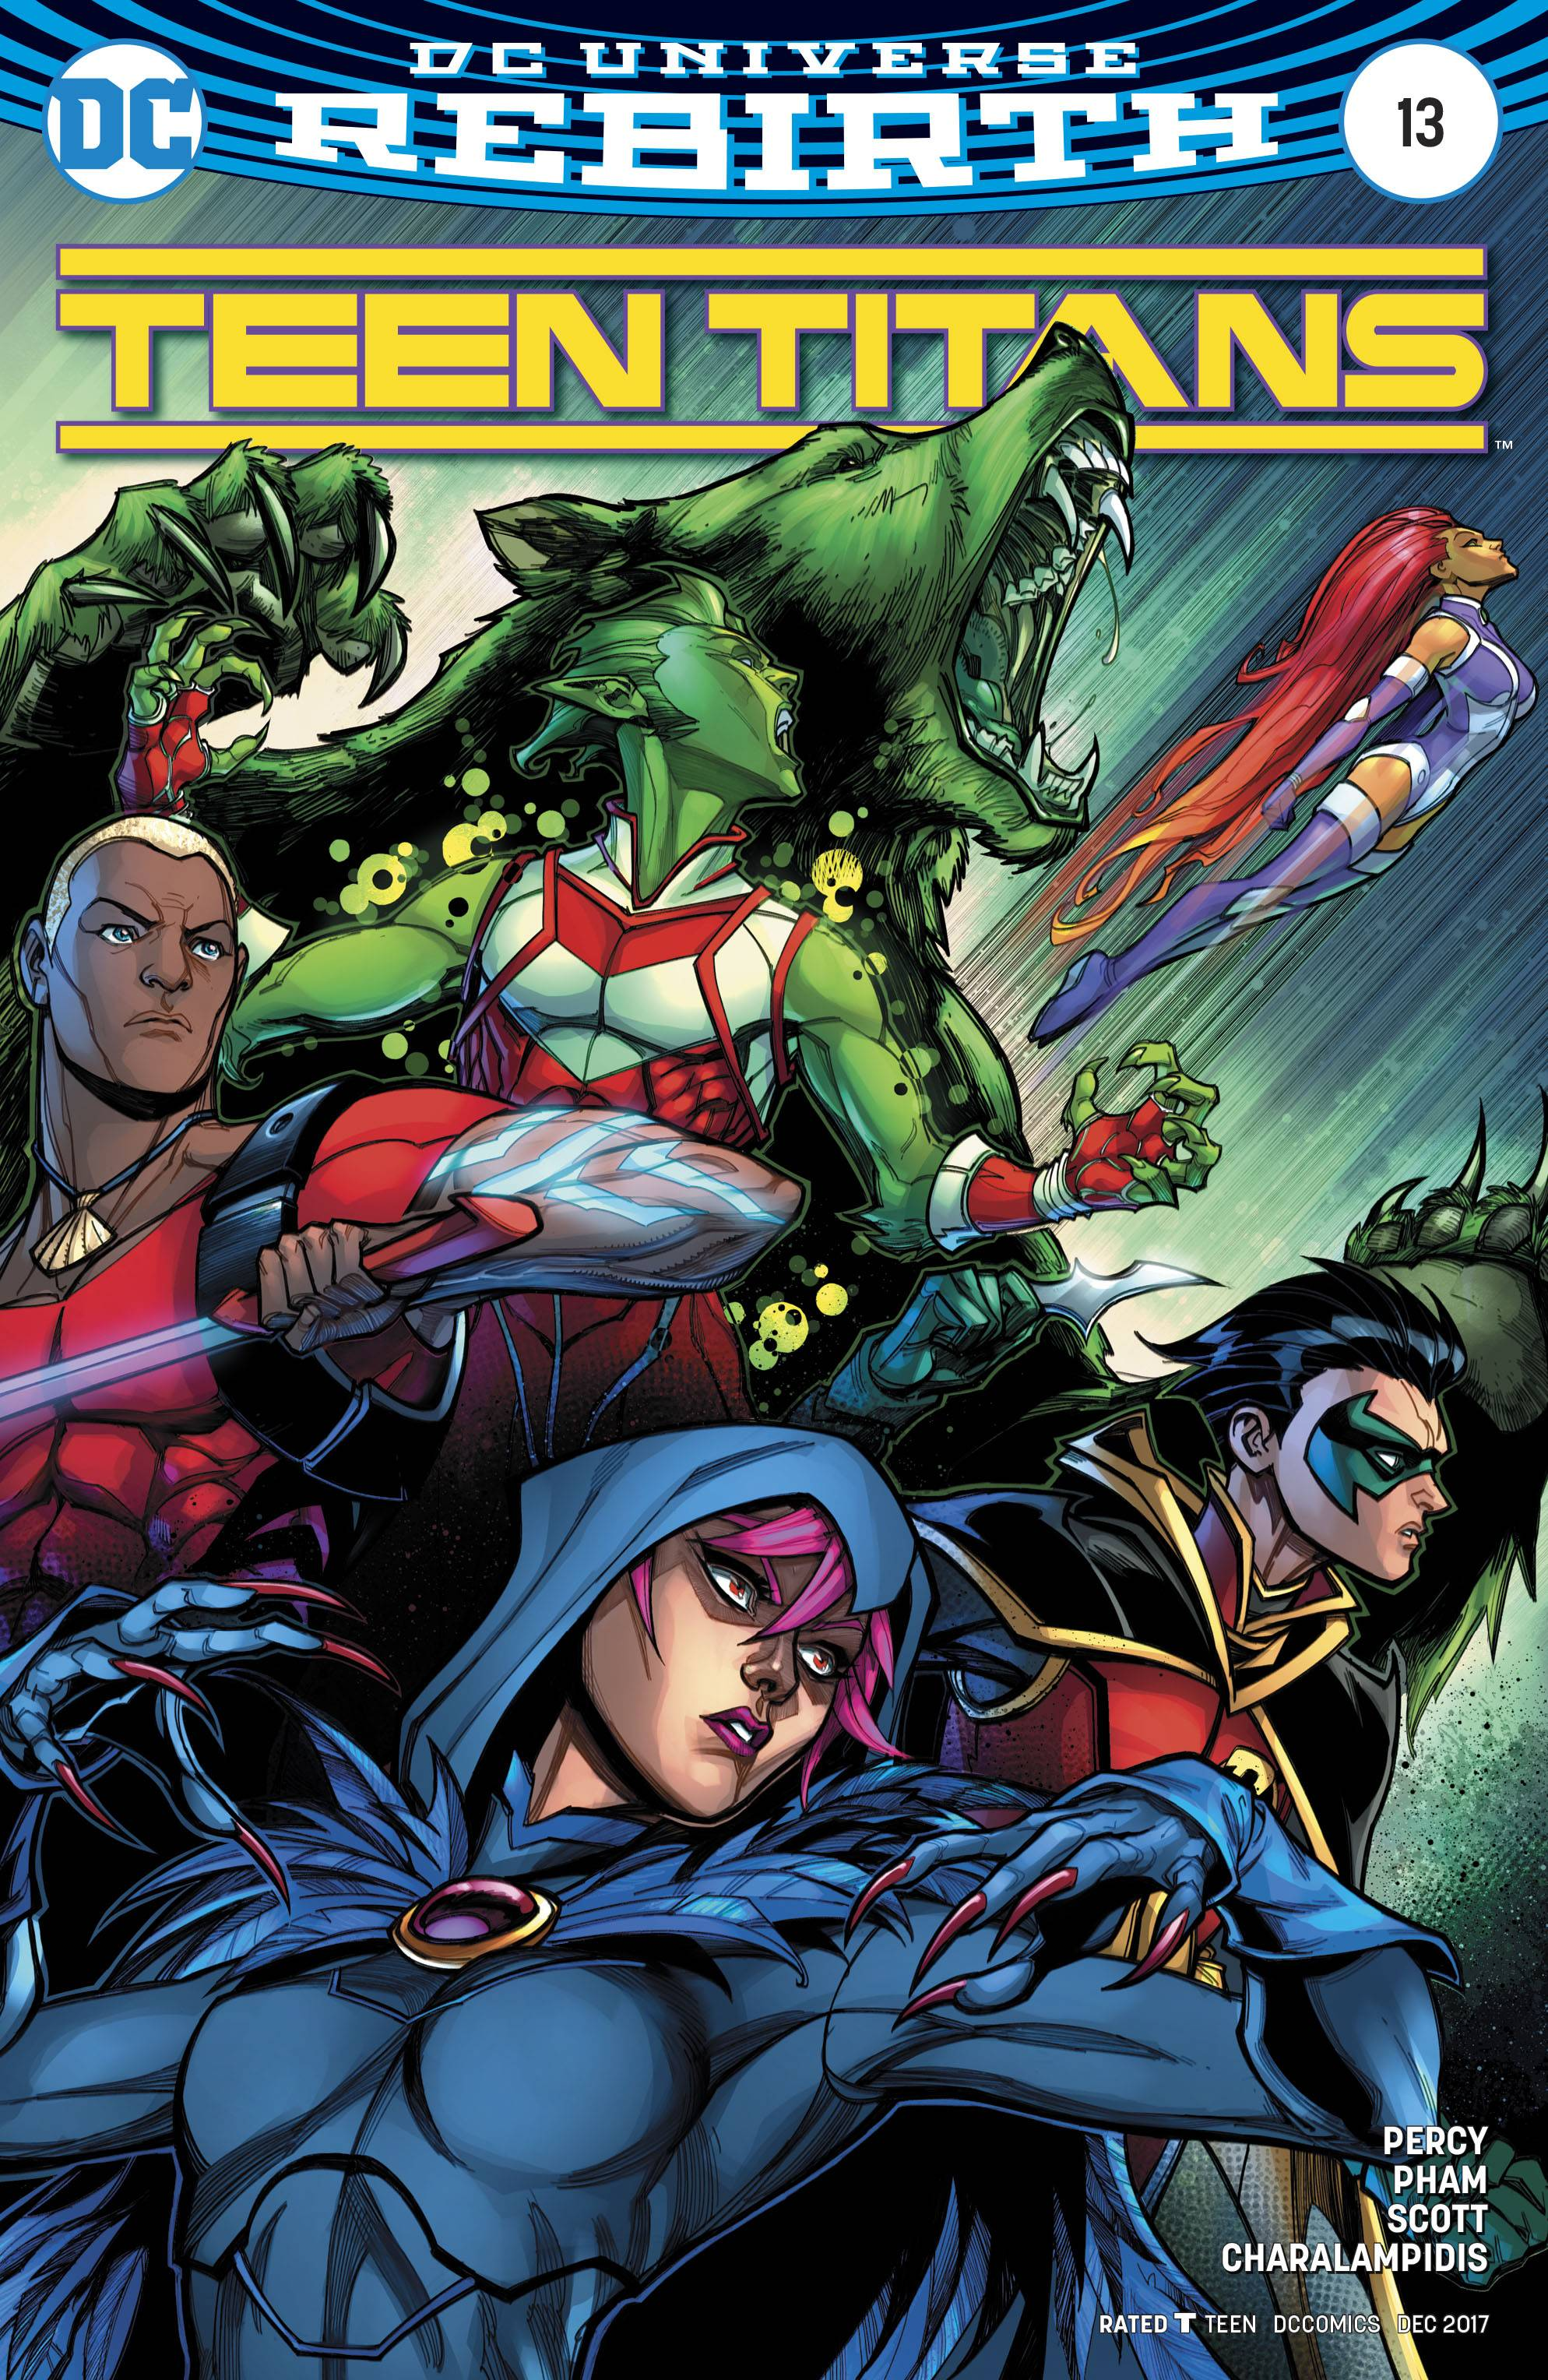 Teen Titans 13 Variant Cover-3498